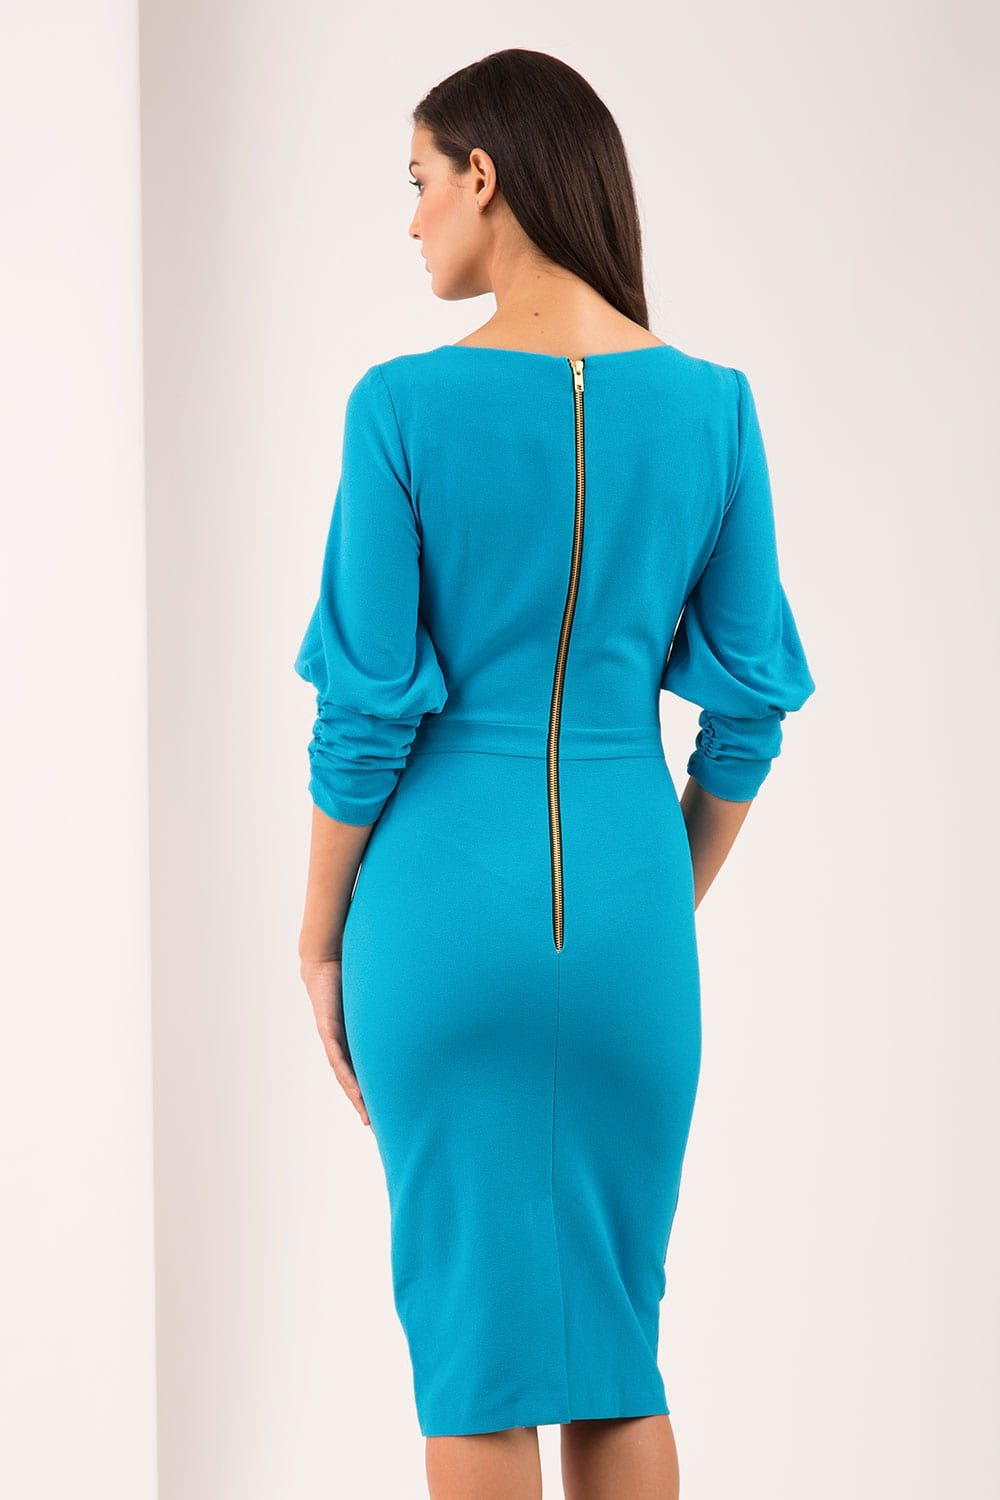 Hybrid Fashion Faith 1372 Pencil Dress with Ruched Sleeves